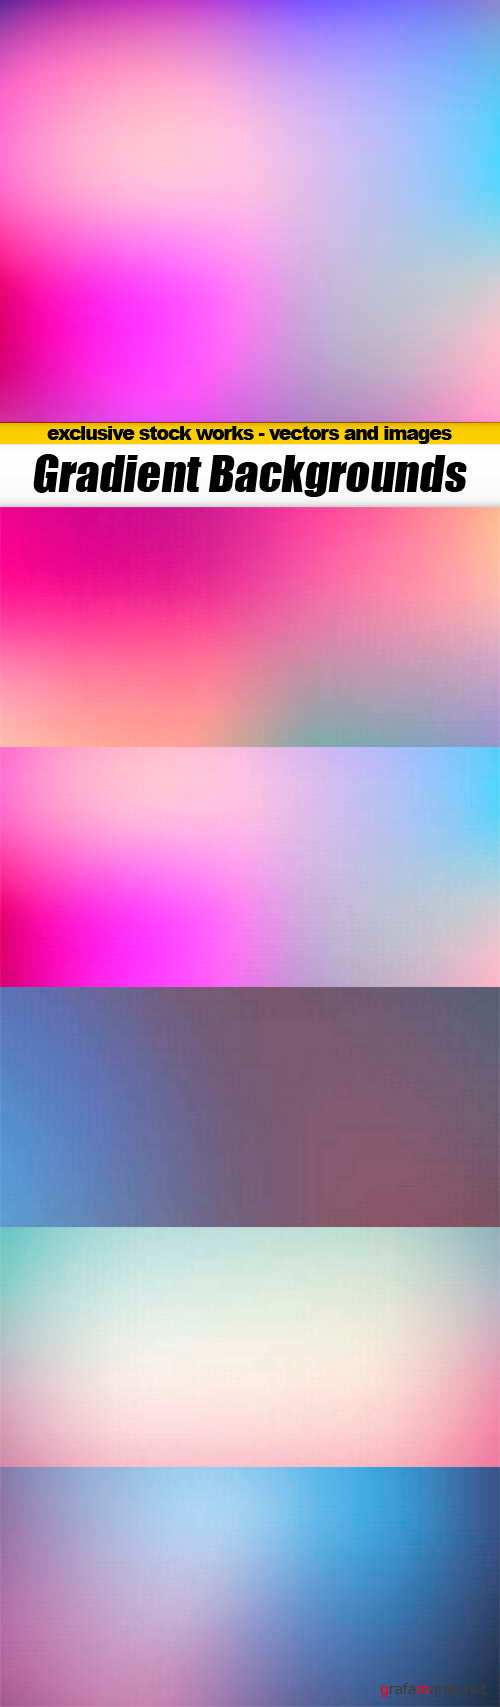 Gradient Backgrounds - 5x EPS